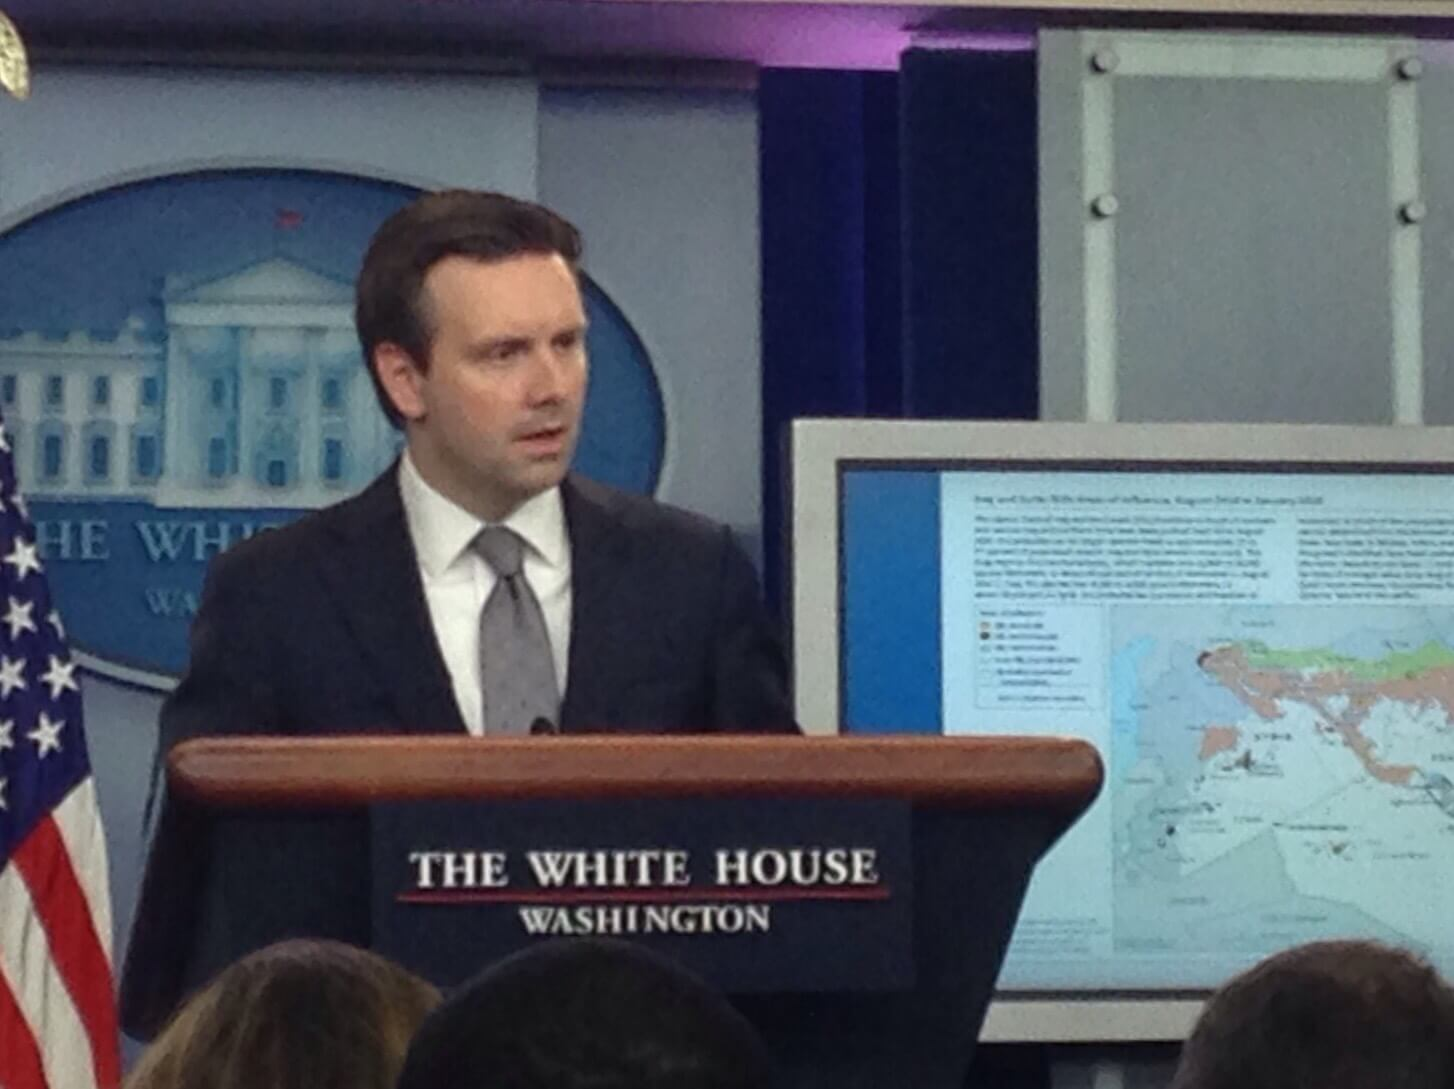 White House press secretary frustrated with Congress for not supporting Obama's Gitmo plan